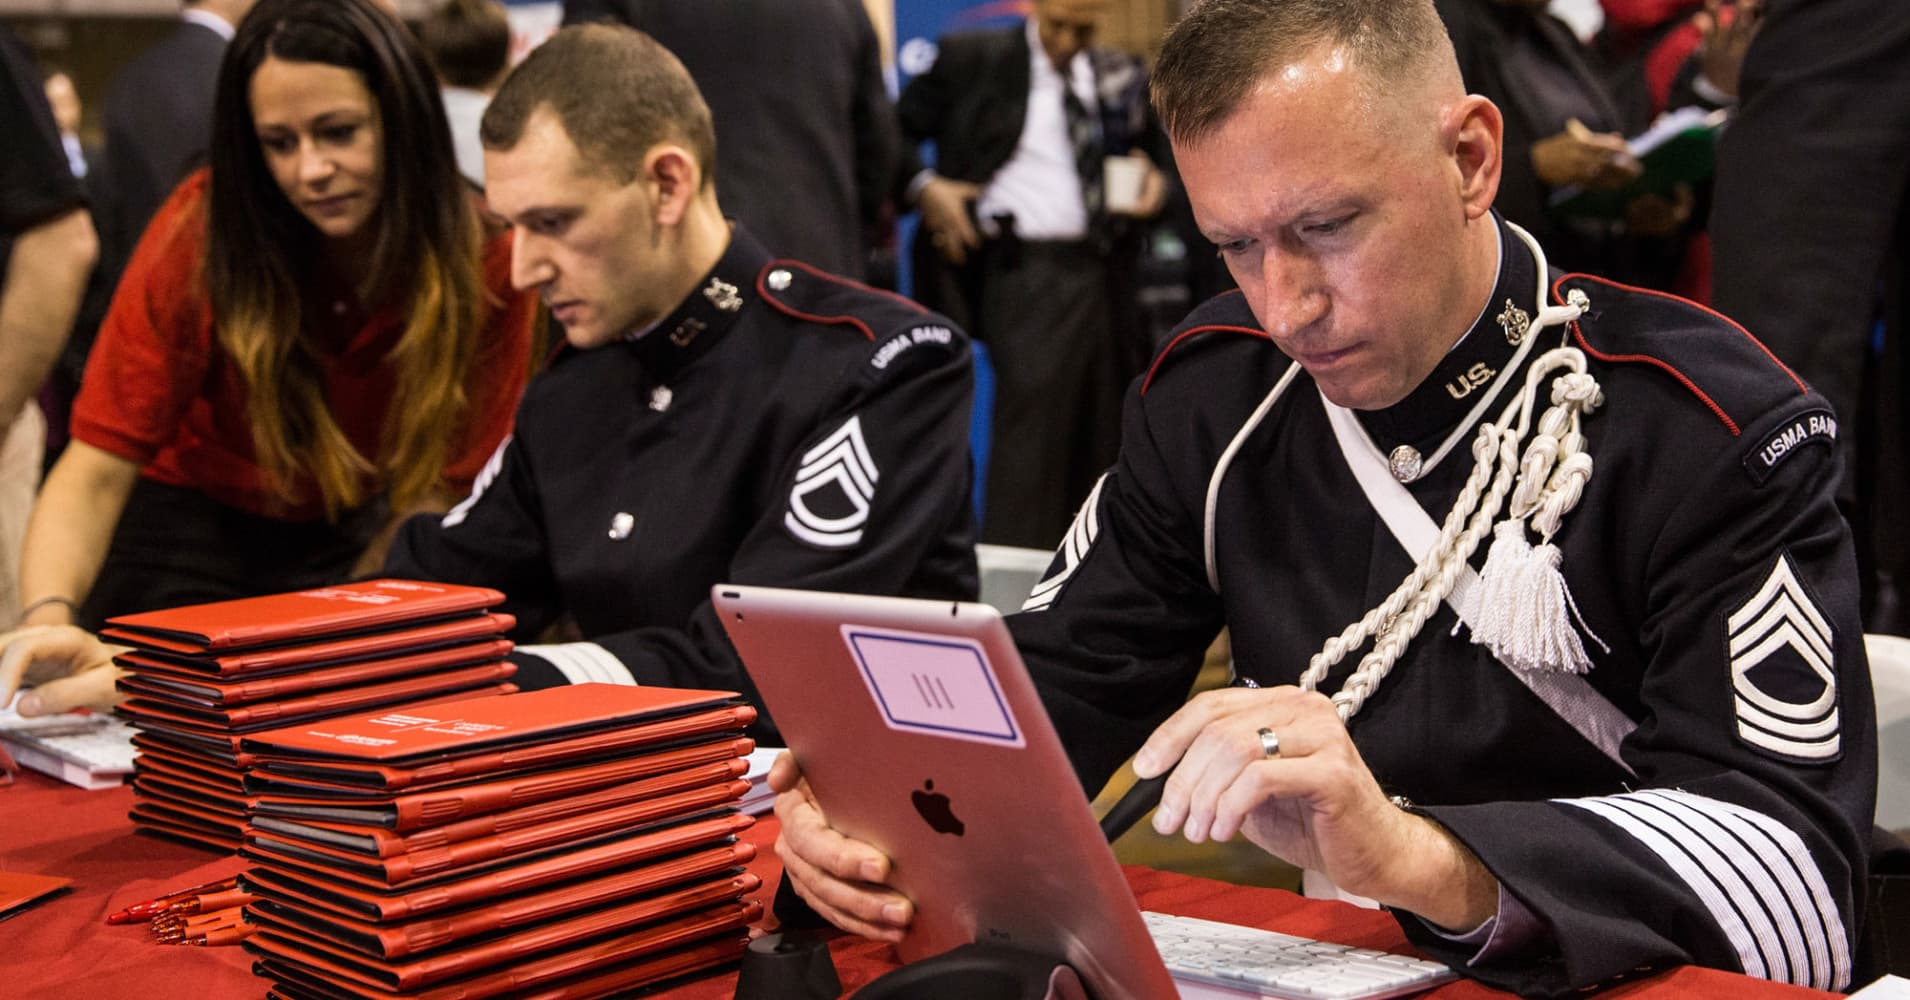 A Master Sergeant of the United States Army, fills out an application with Toyota in New York City.